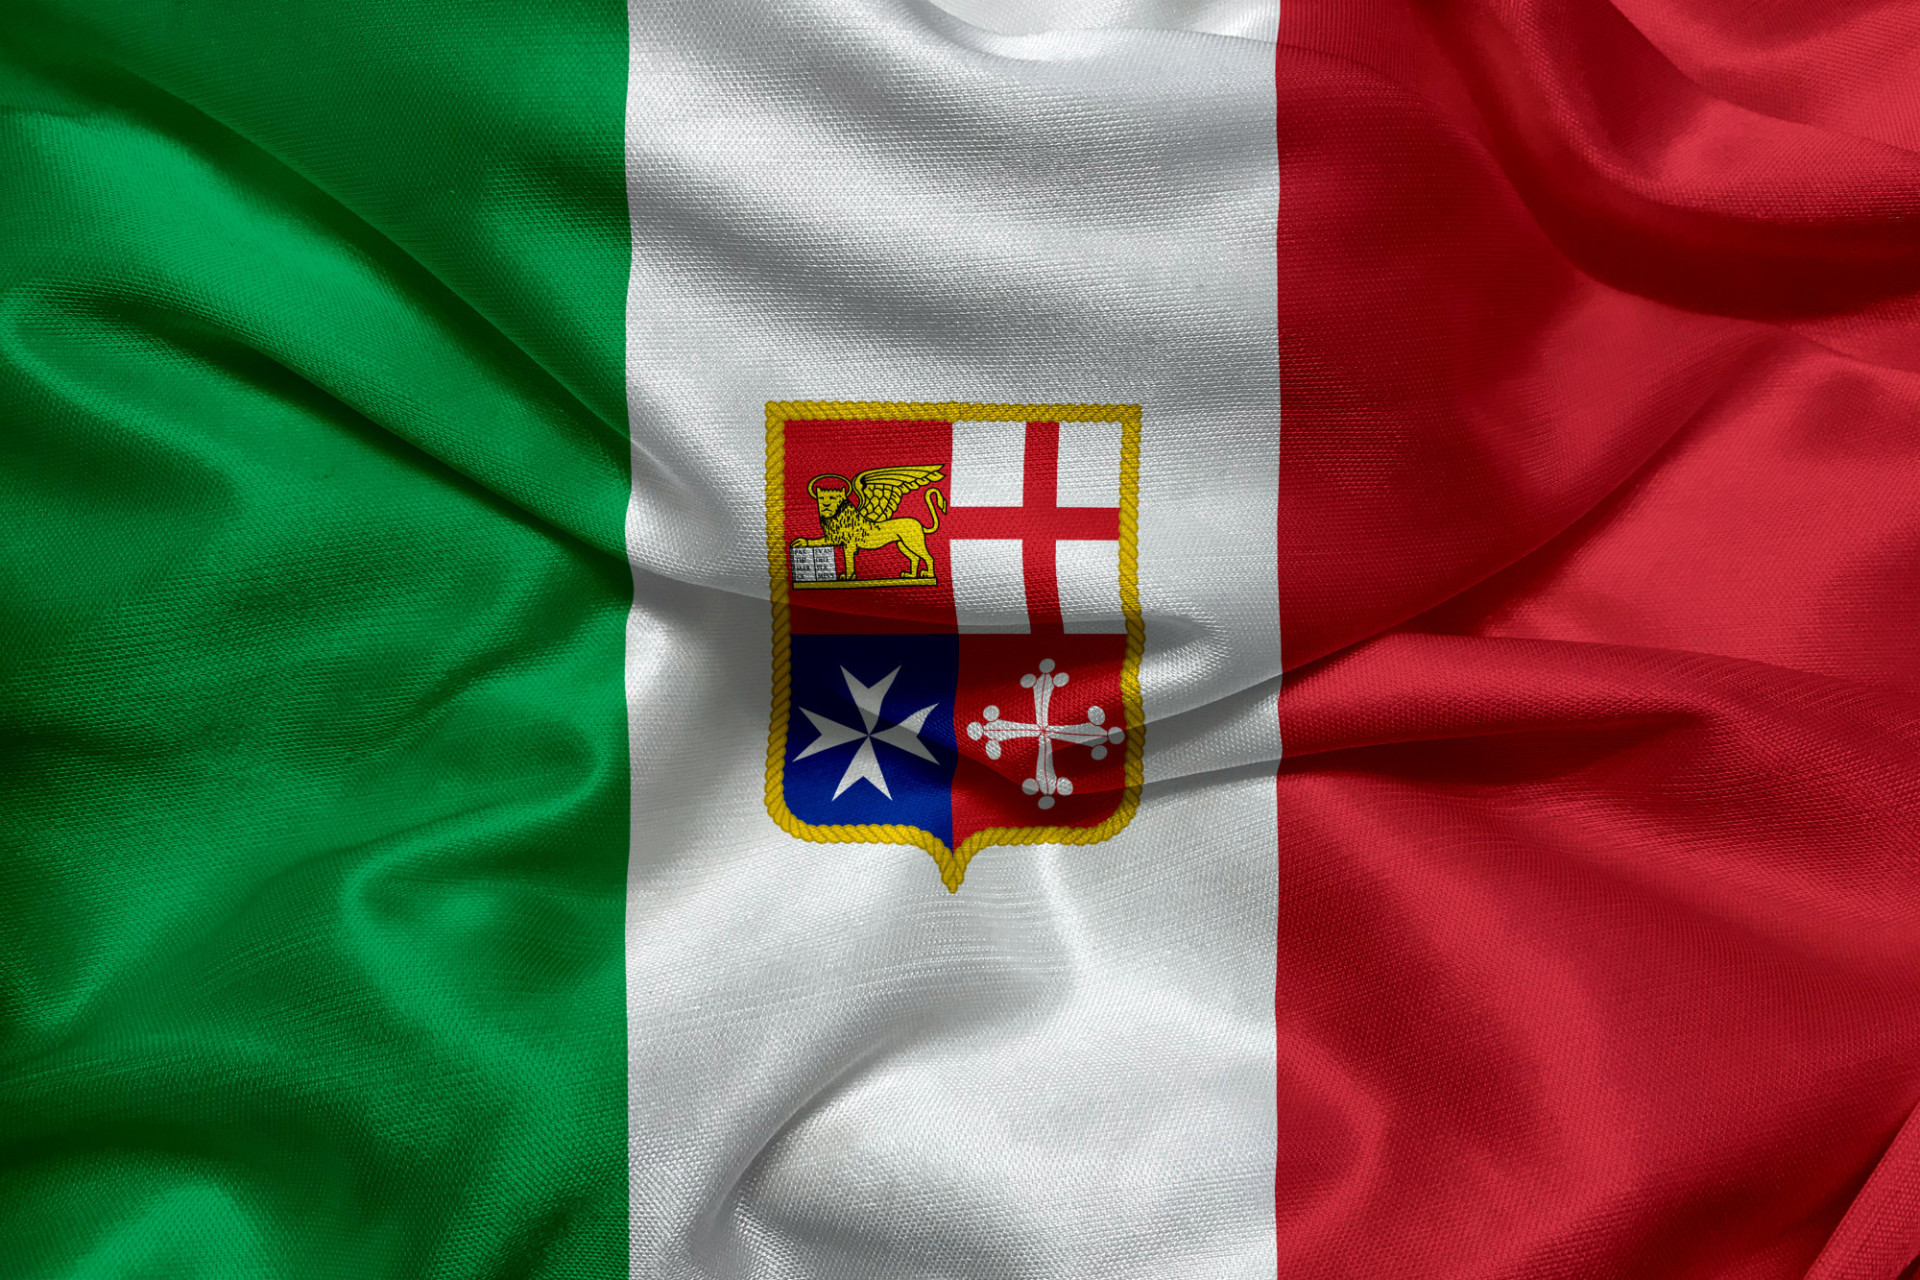 Flag of Italy - Civil Ensign of Italy